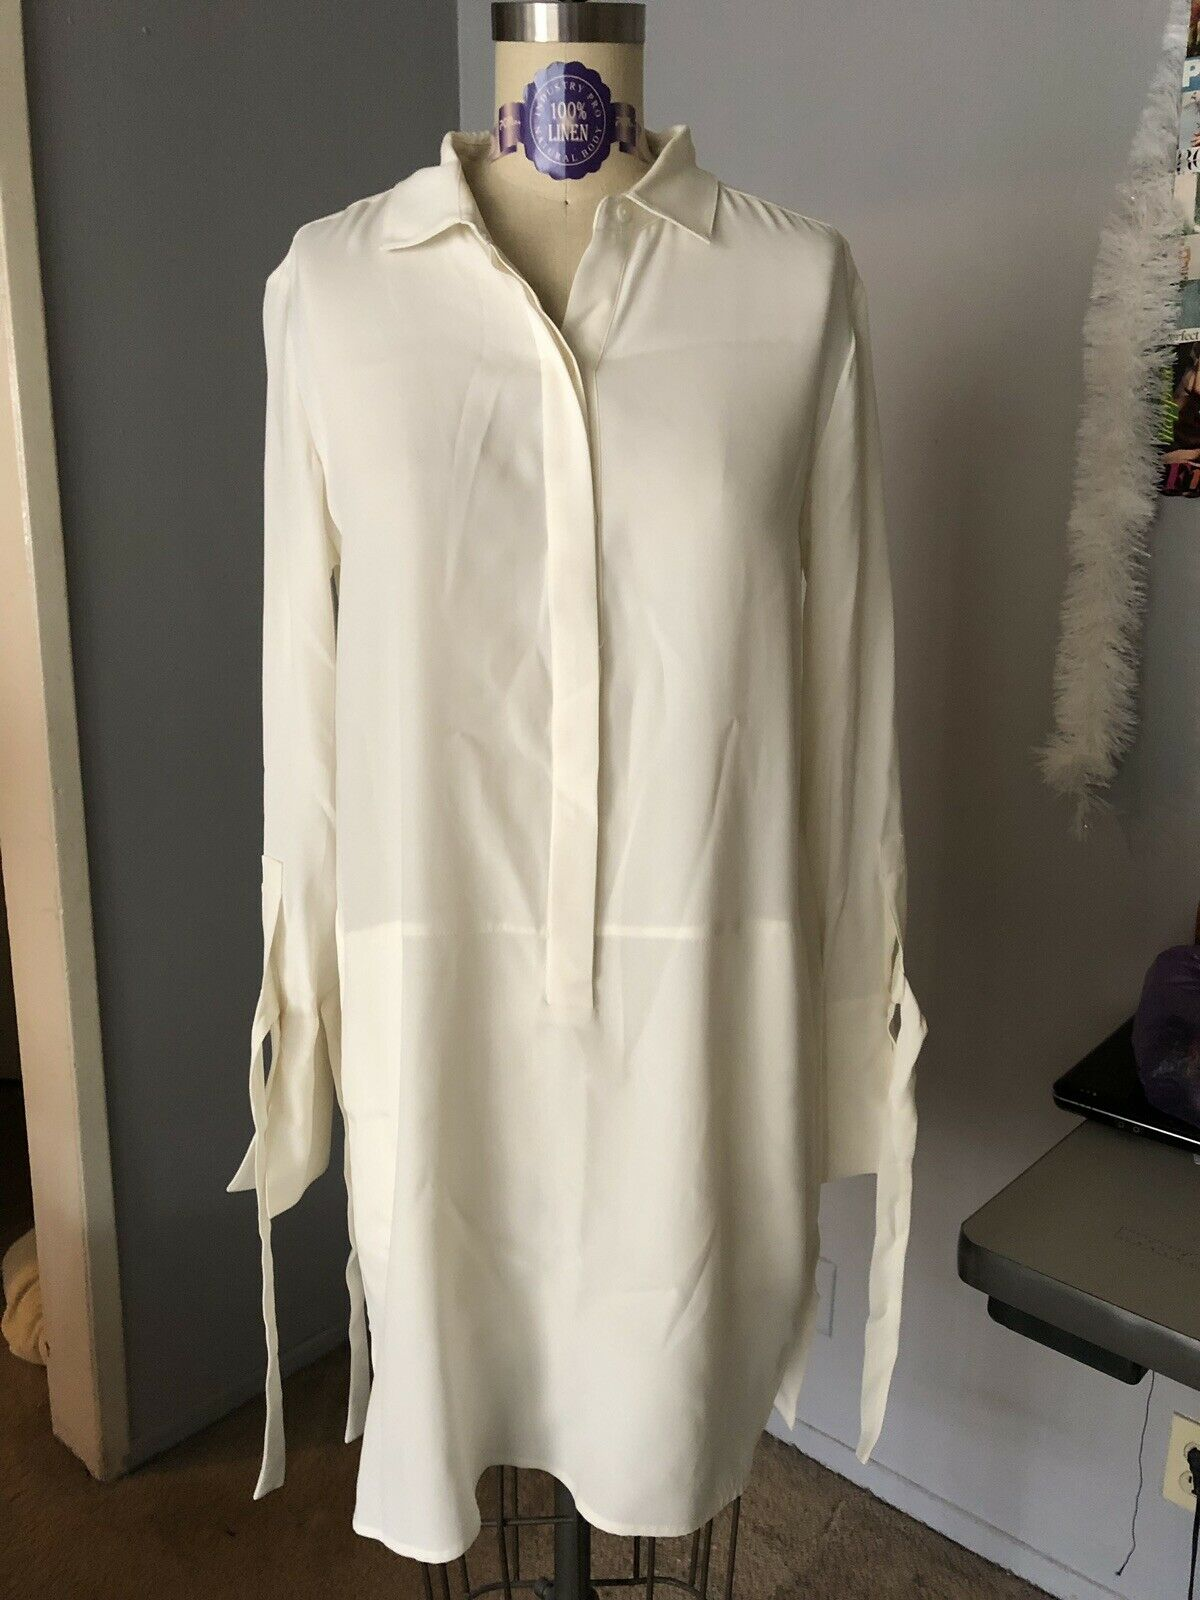 Halston Heritage High Low Button Down Ivory Blouse Dress with Pockets Größe 2